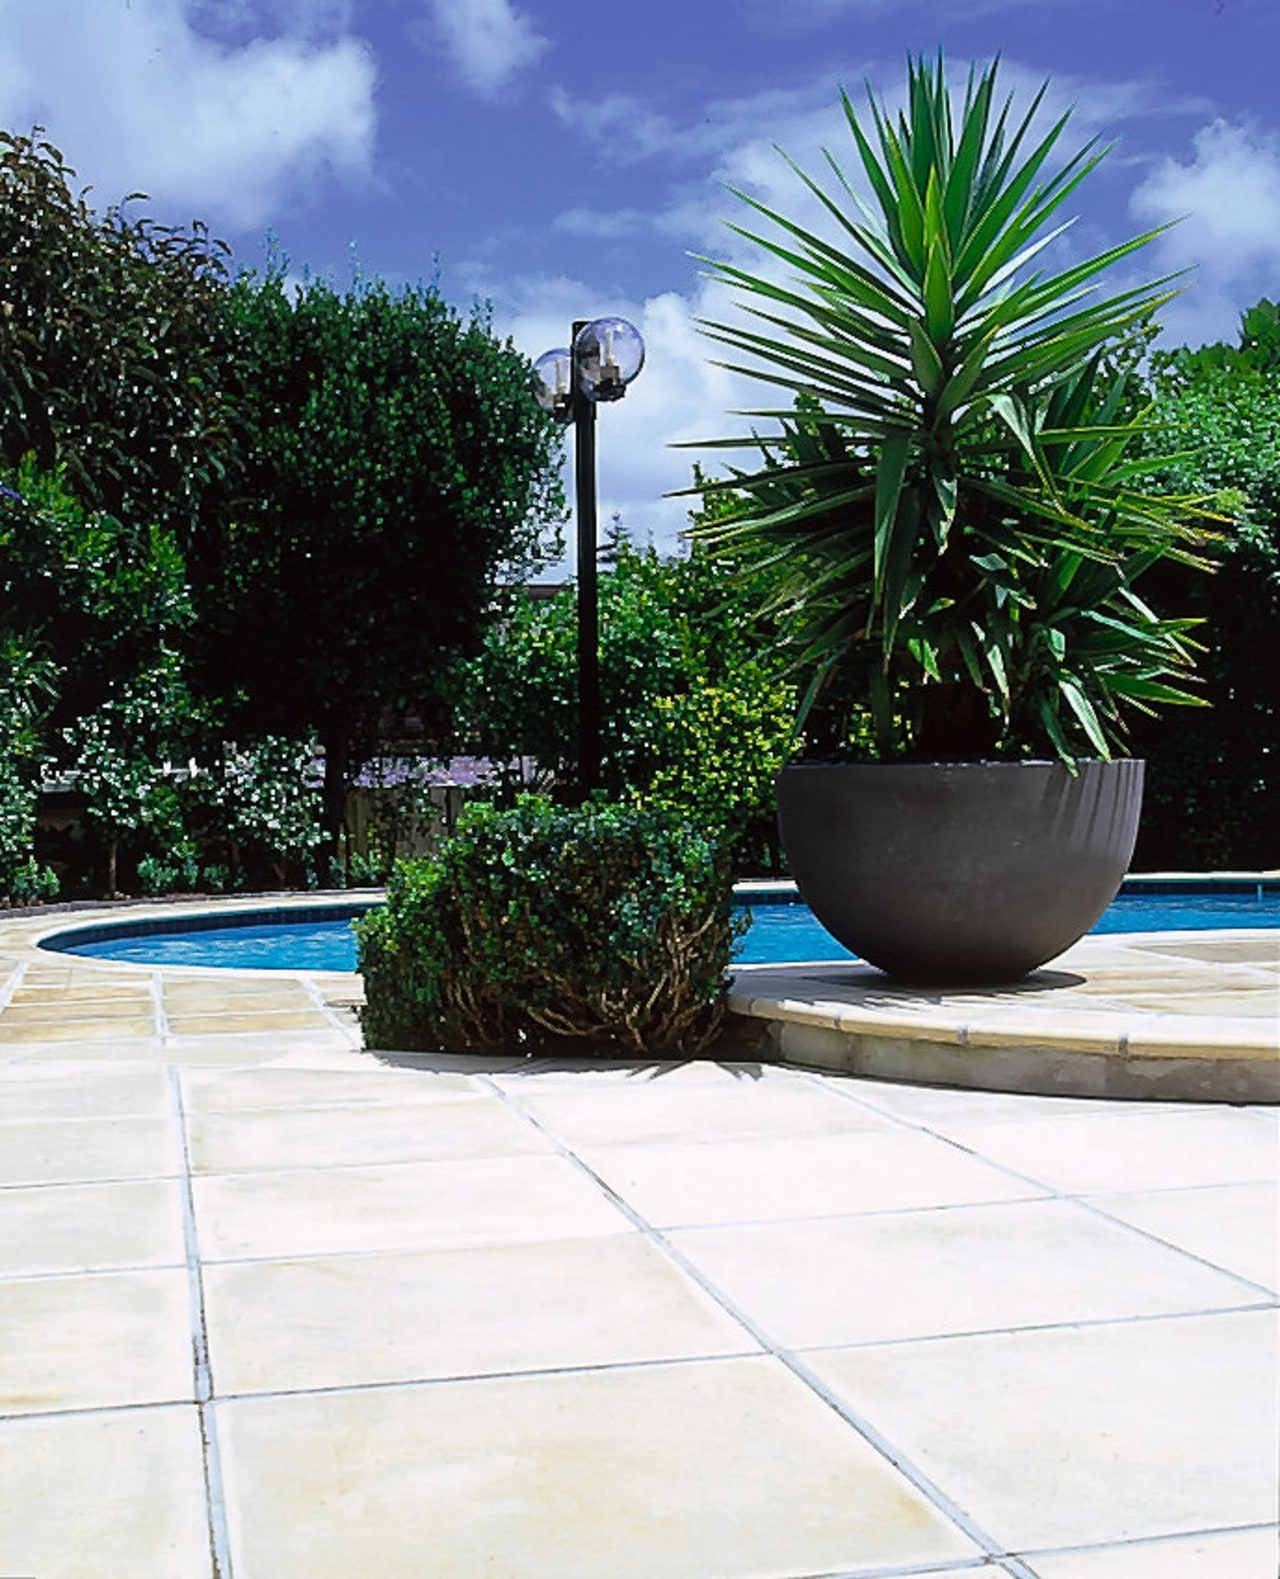 Smooth, light coloured pavers surround a pool, with arecales, backyard, flowerpot, garden, grass, landscape, landscaping, leaf, outdoor structure, palm tree, plant, sky, tree, yard, white